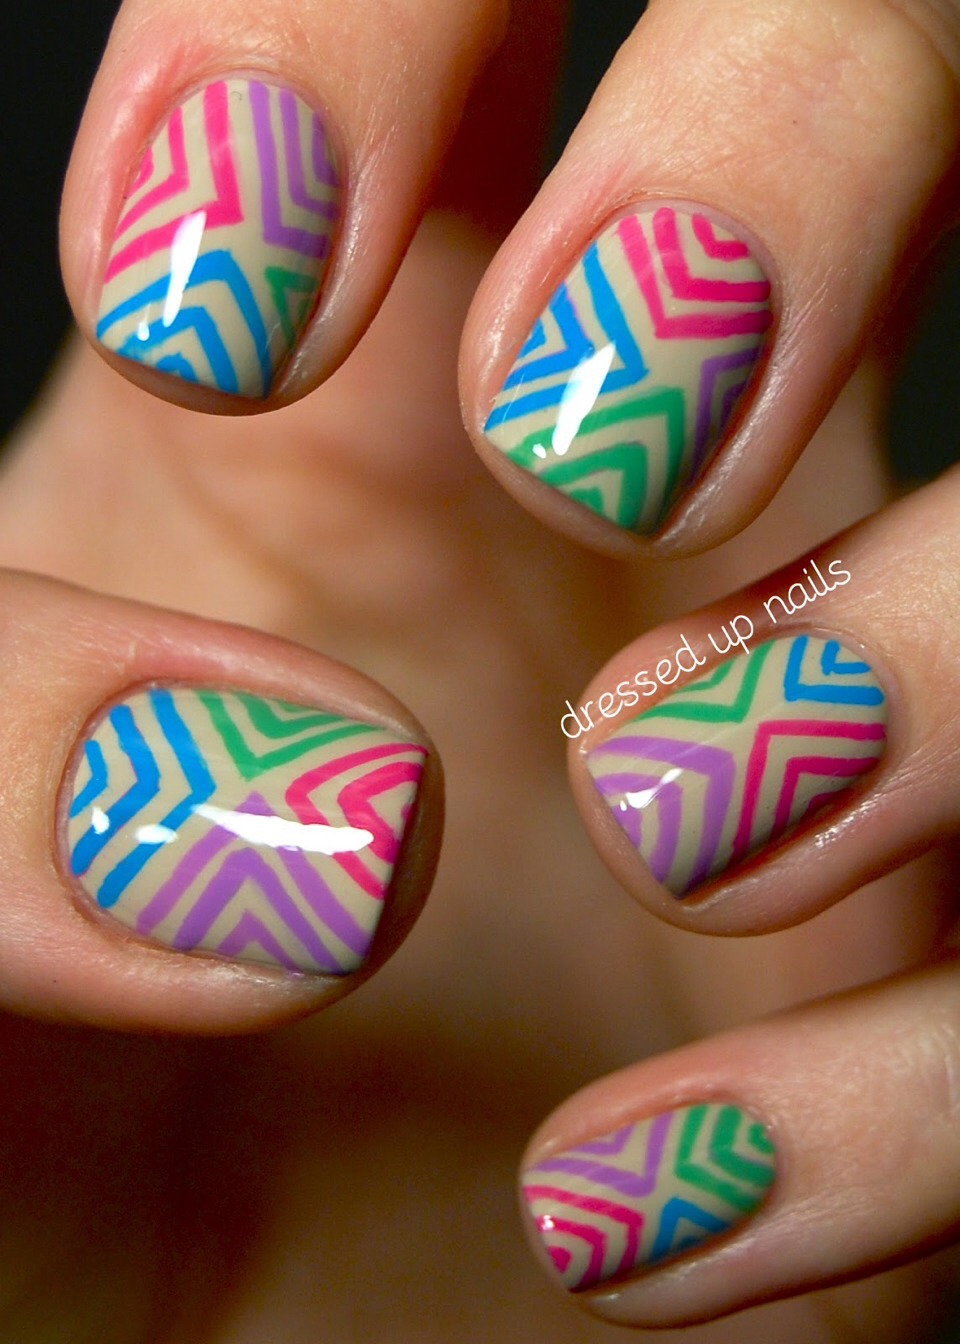 Cute Nail Designs All Different